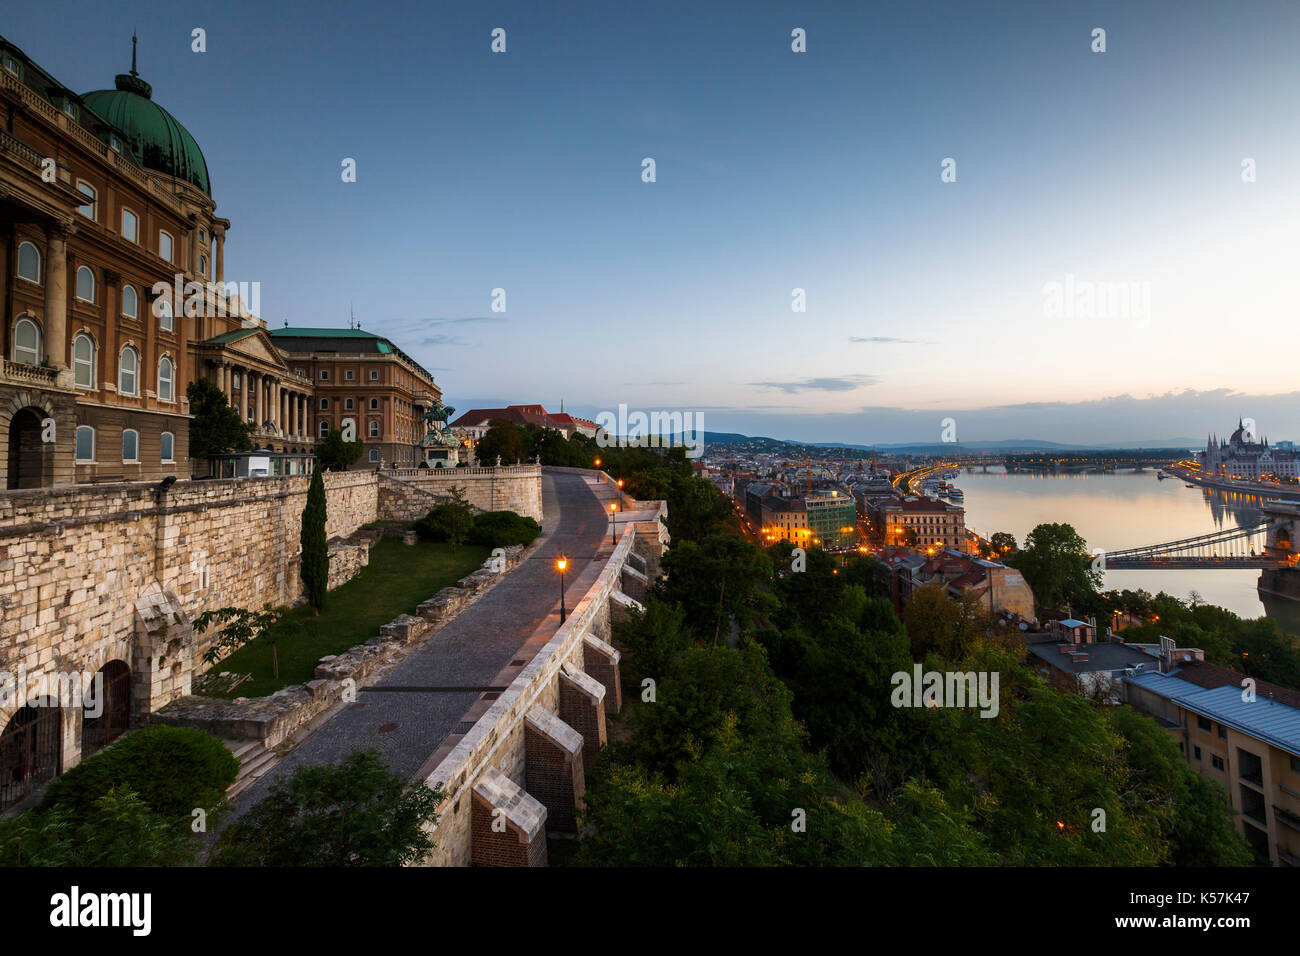 Buda castle and historic town centre of Budapest, Hungary. - Stock Image